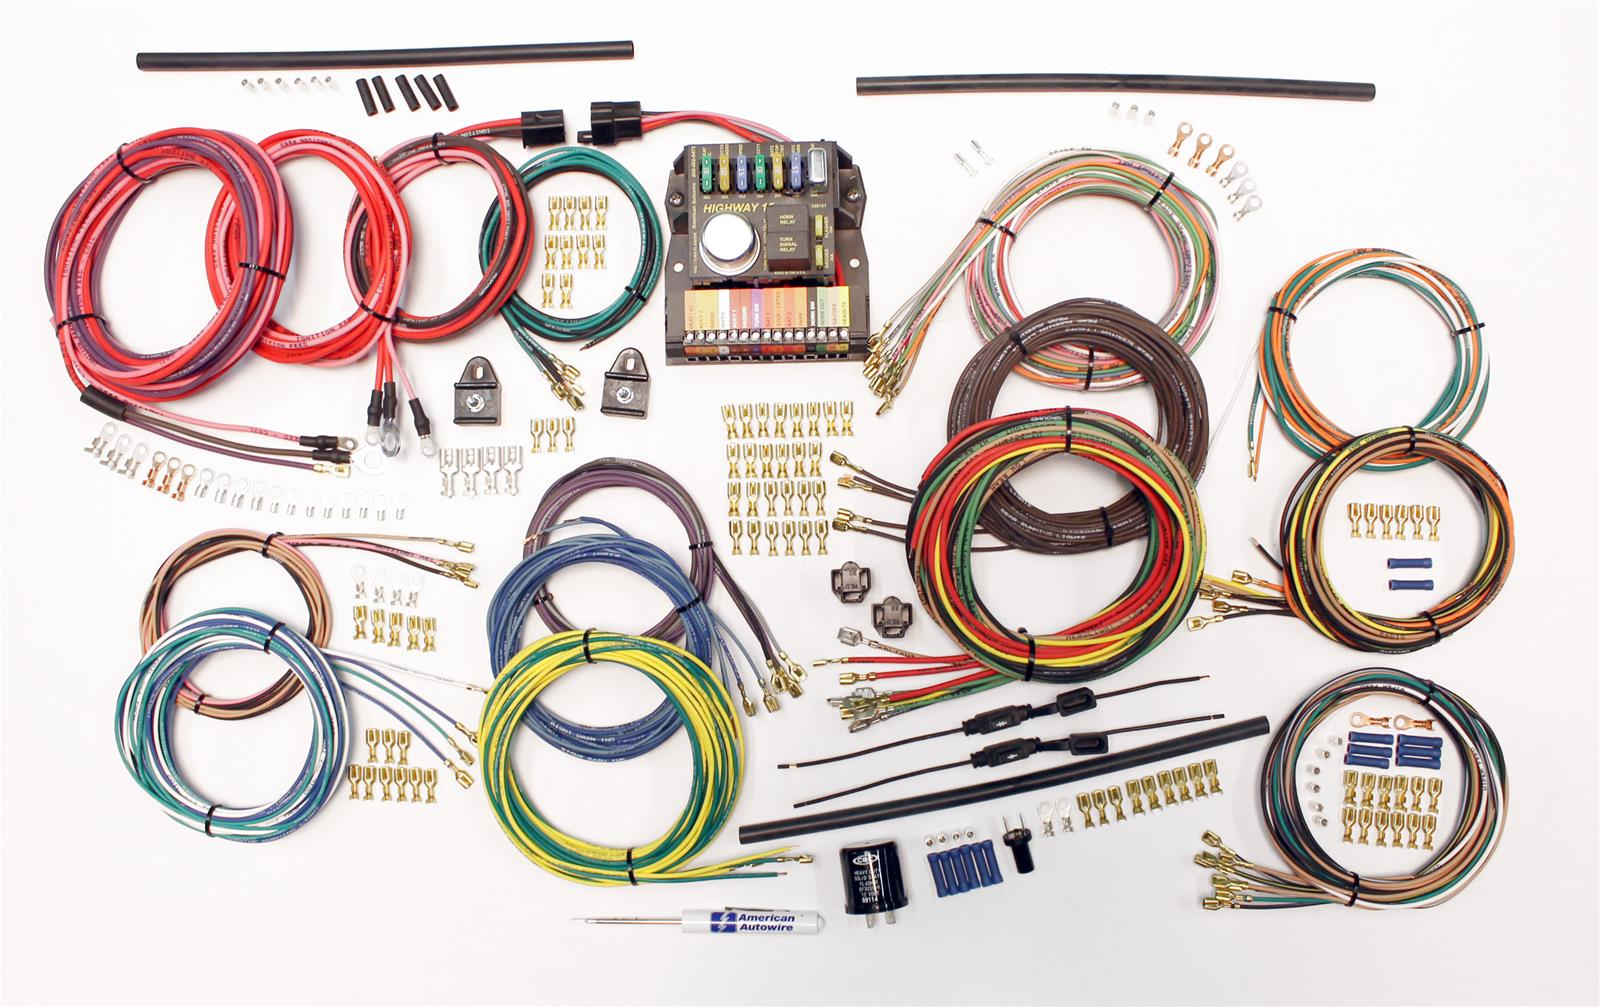 aww 510419_xl american autowire classic update series wiring harness kits 510419 Install American Autowire at n-0.co